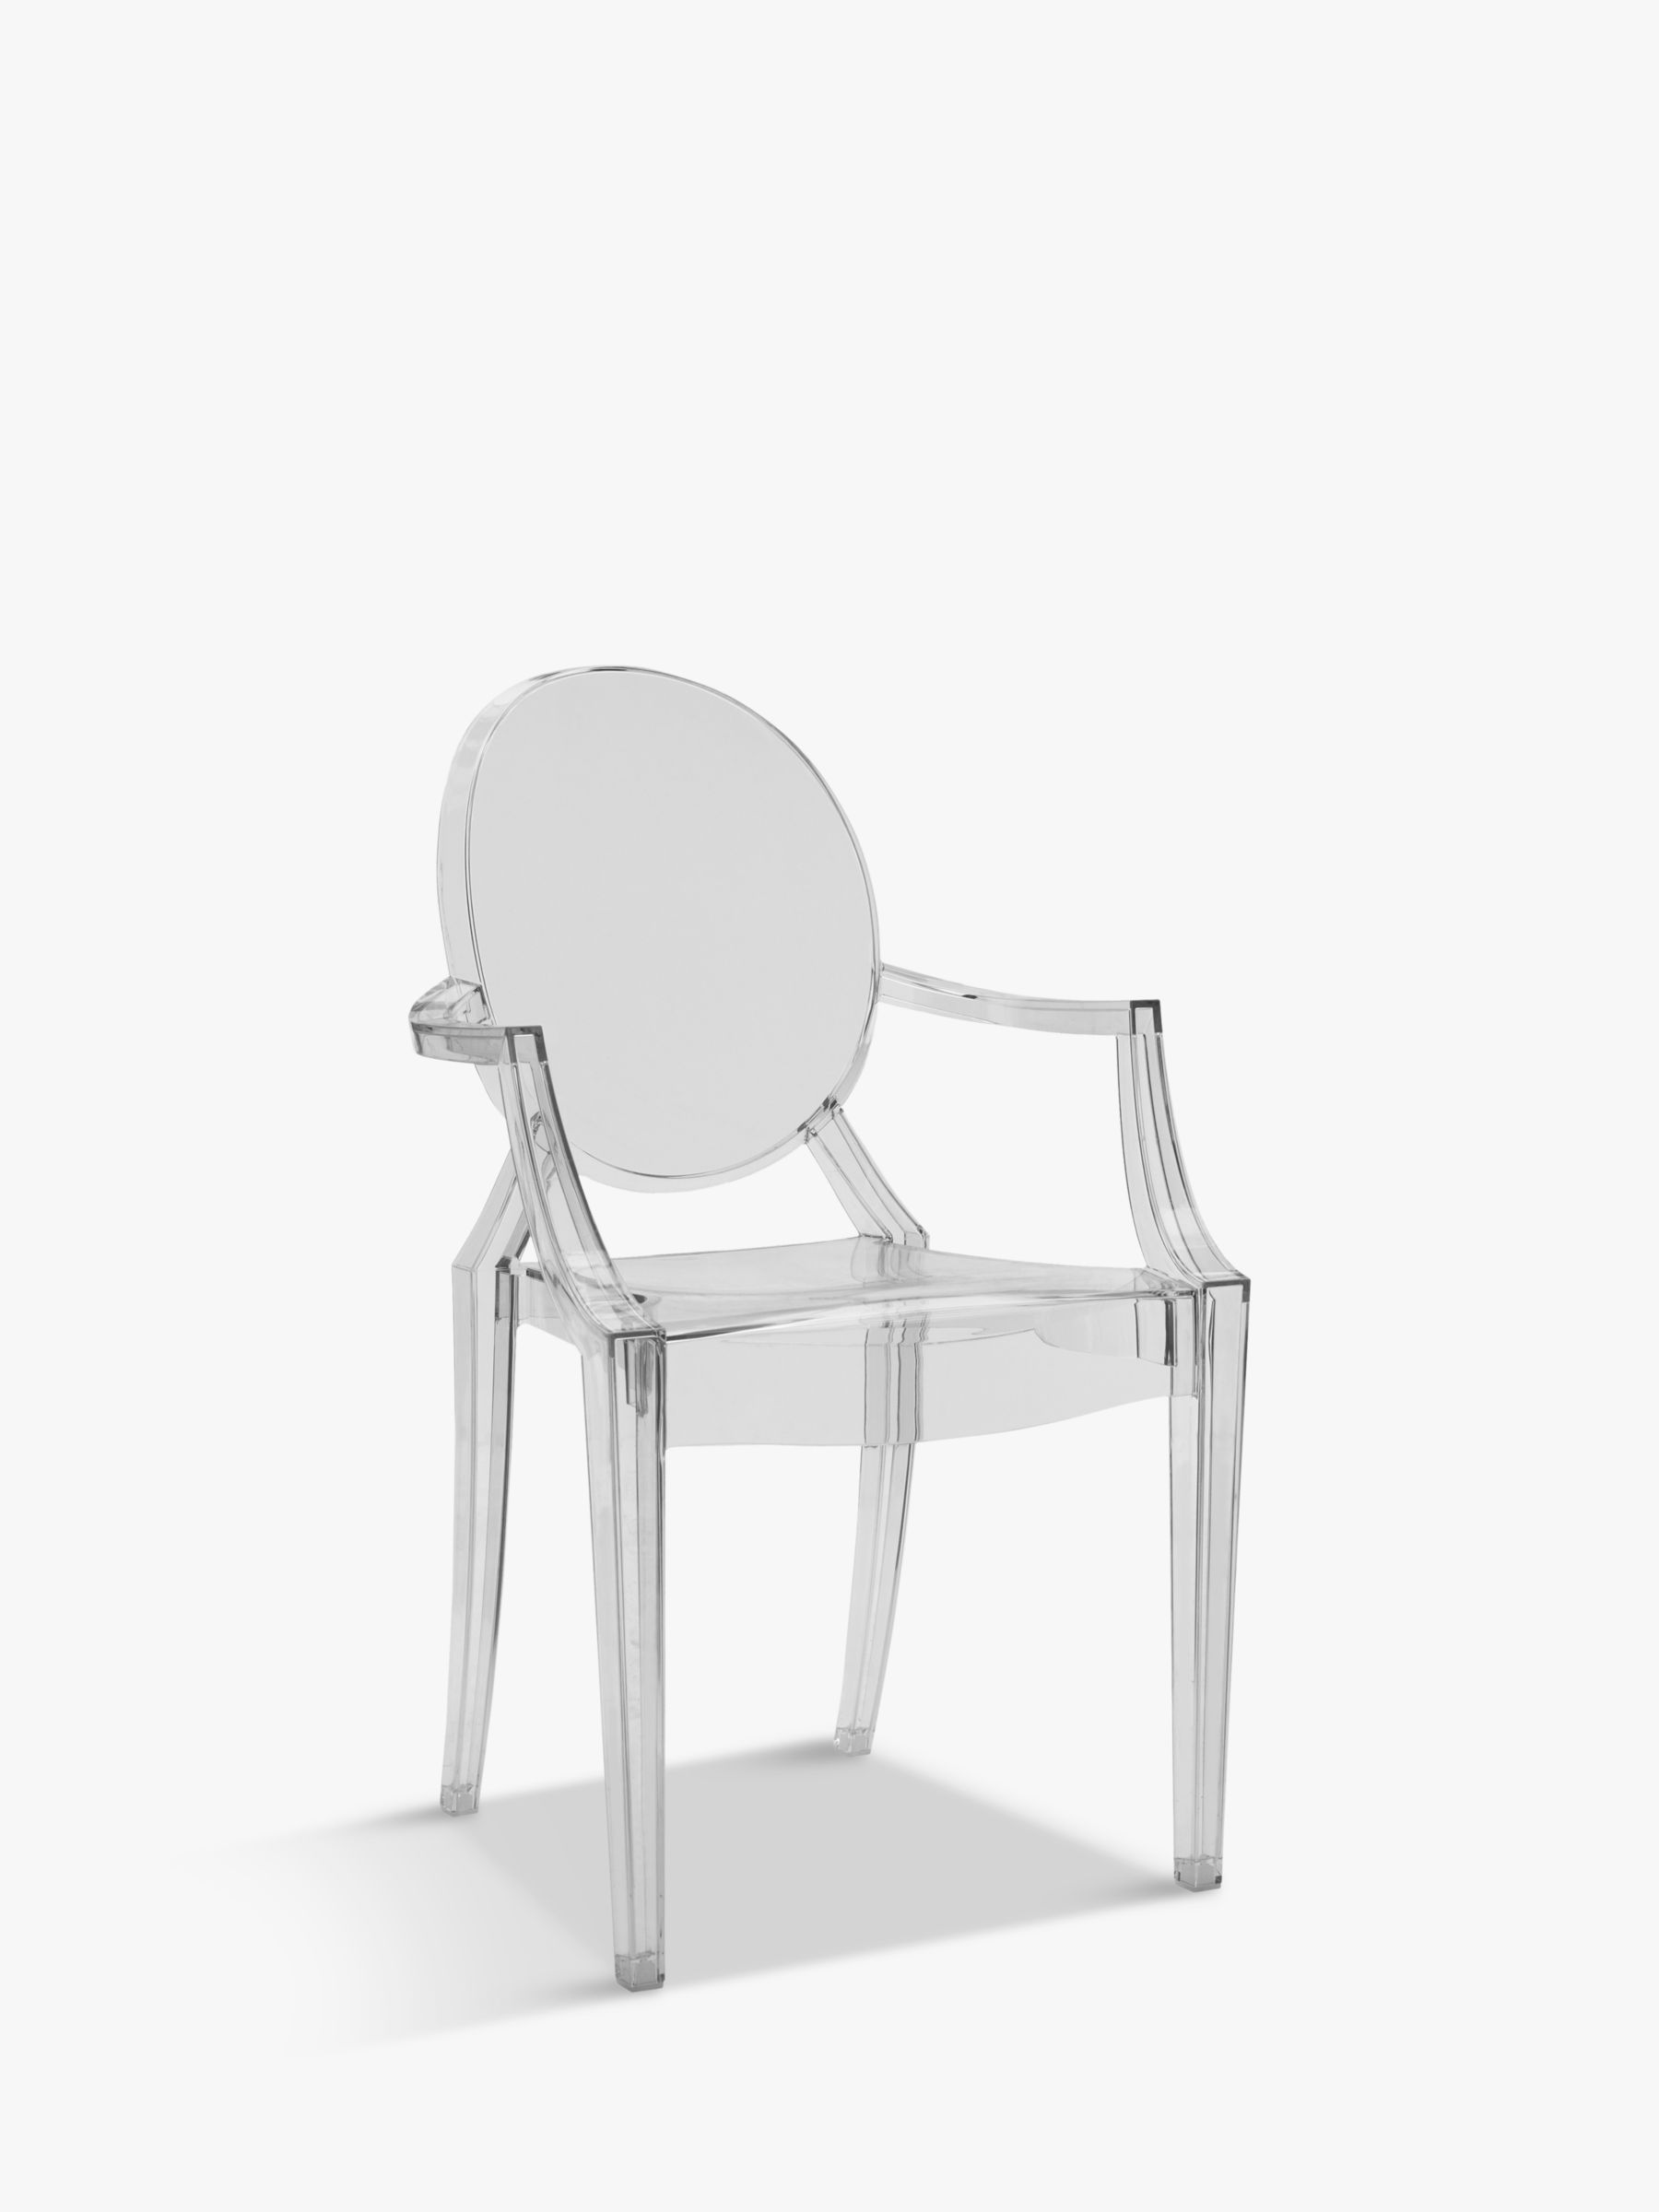 philippe ghost barstool bar chair starck catalog stool product victoria